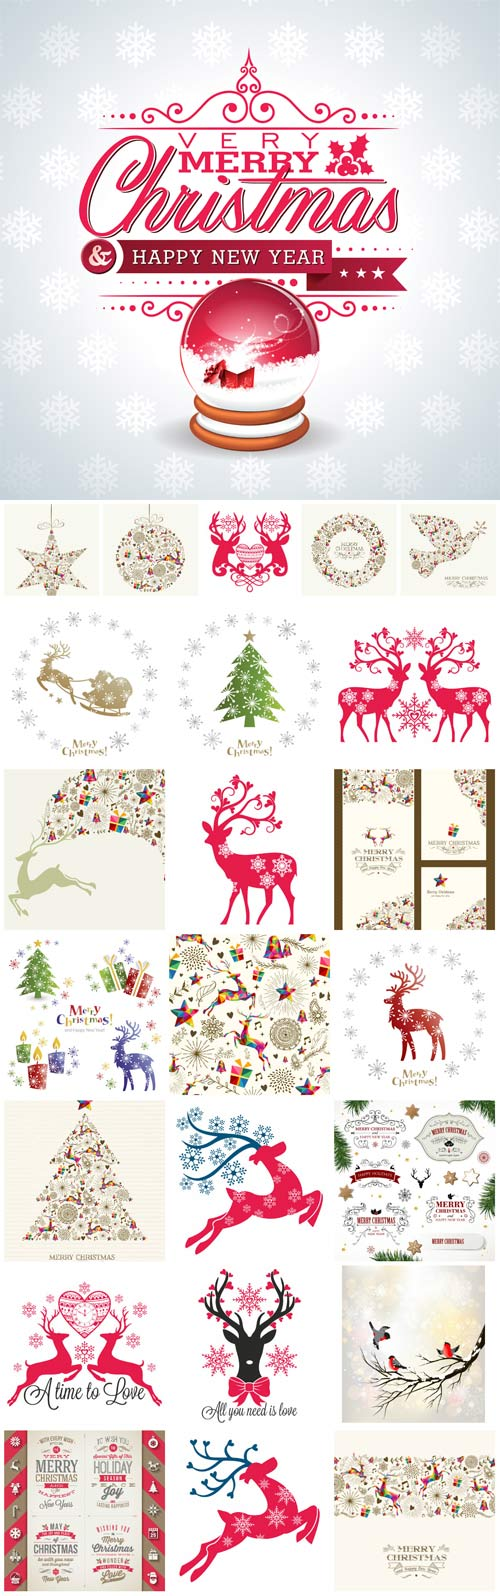 Christmas vector with reindeer and winter decor